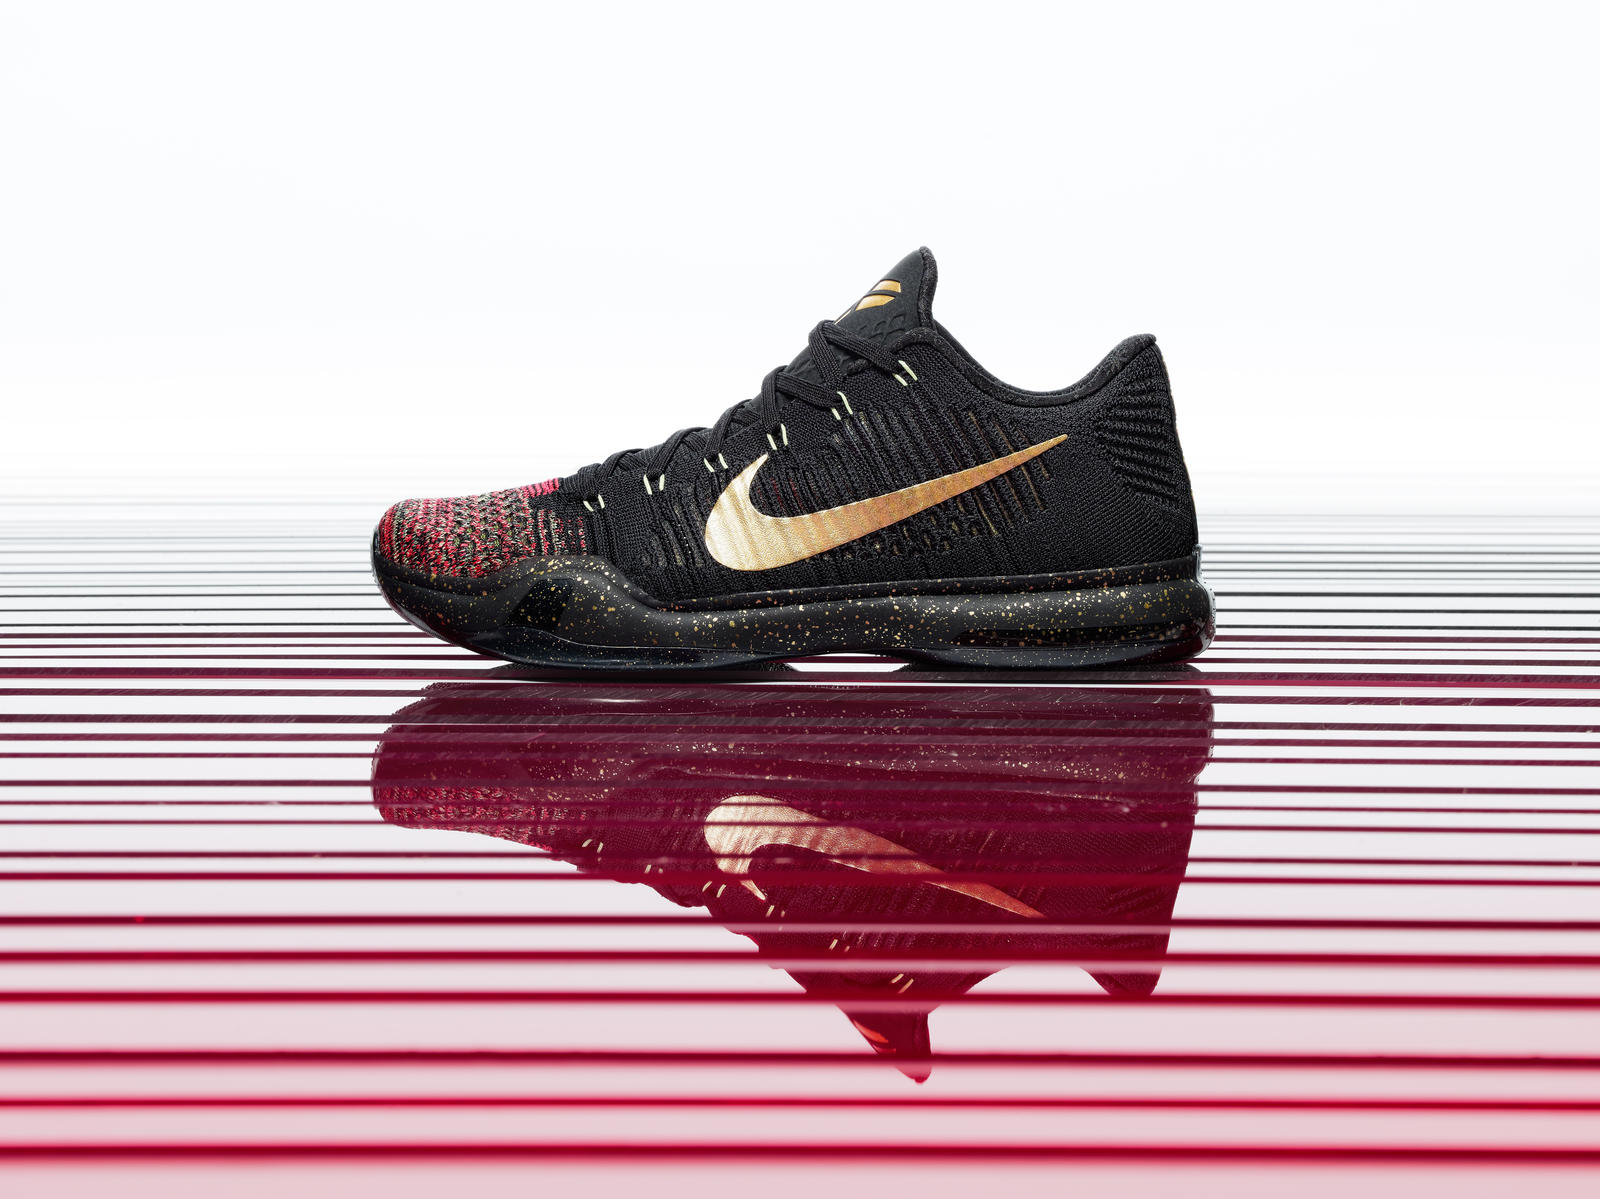 huge selection of 101e5 bd3ea Fire and Ice  The 2015 Nike Basketball Christmas Collection - Nike News